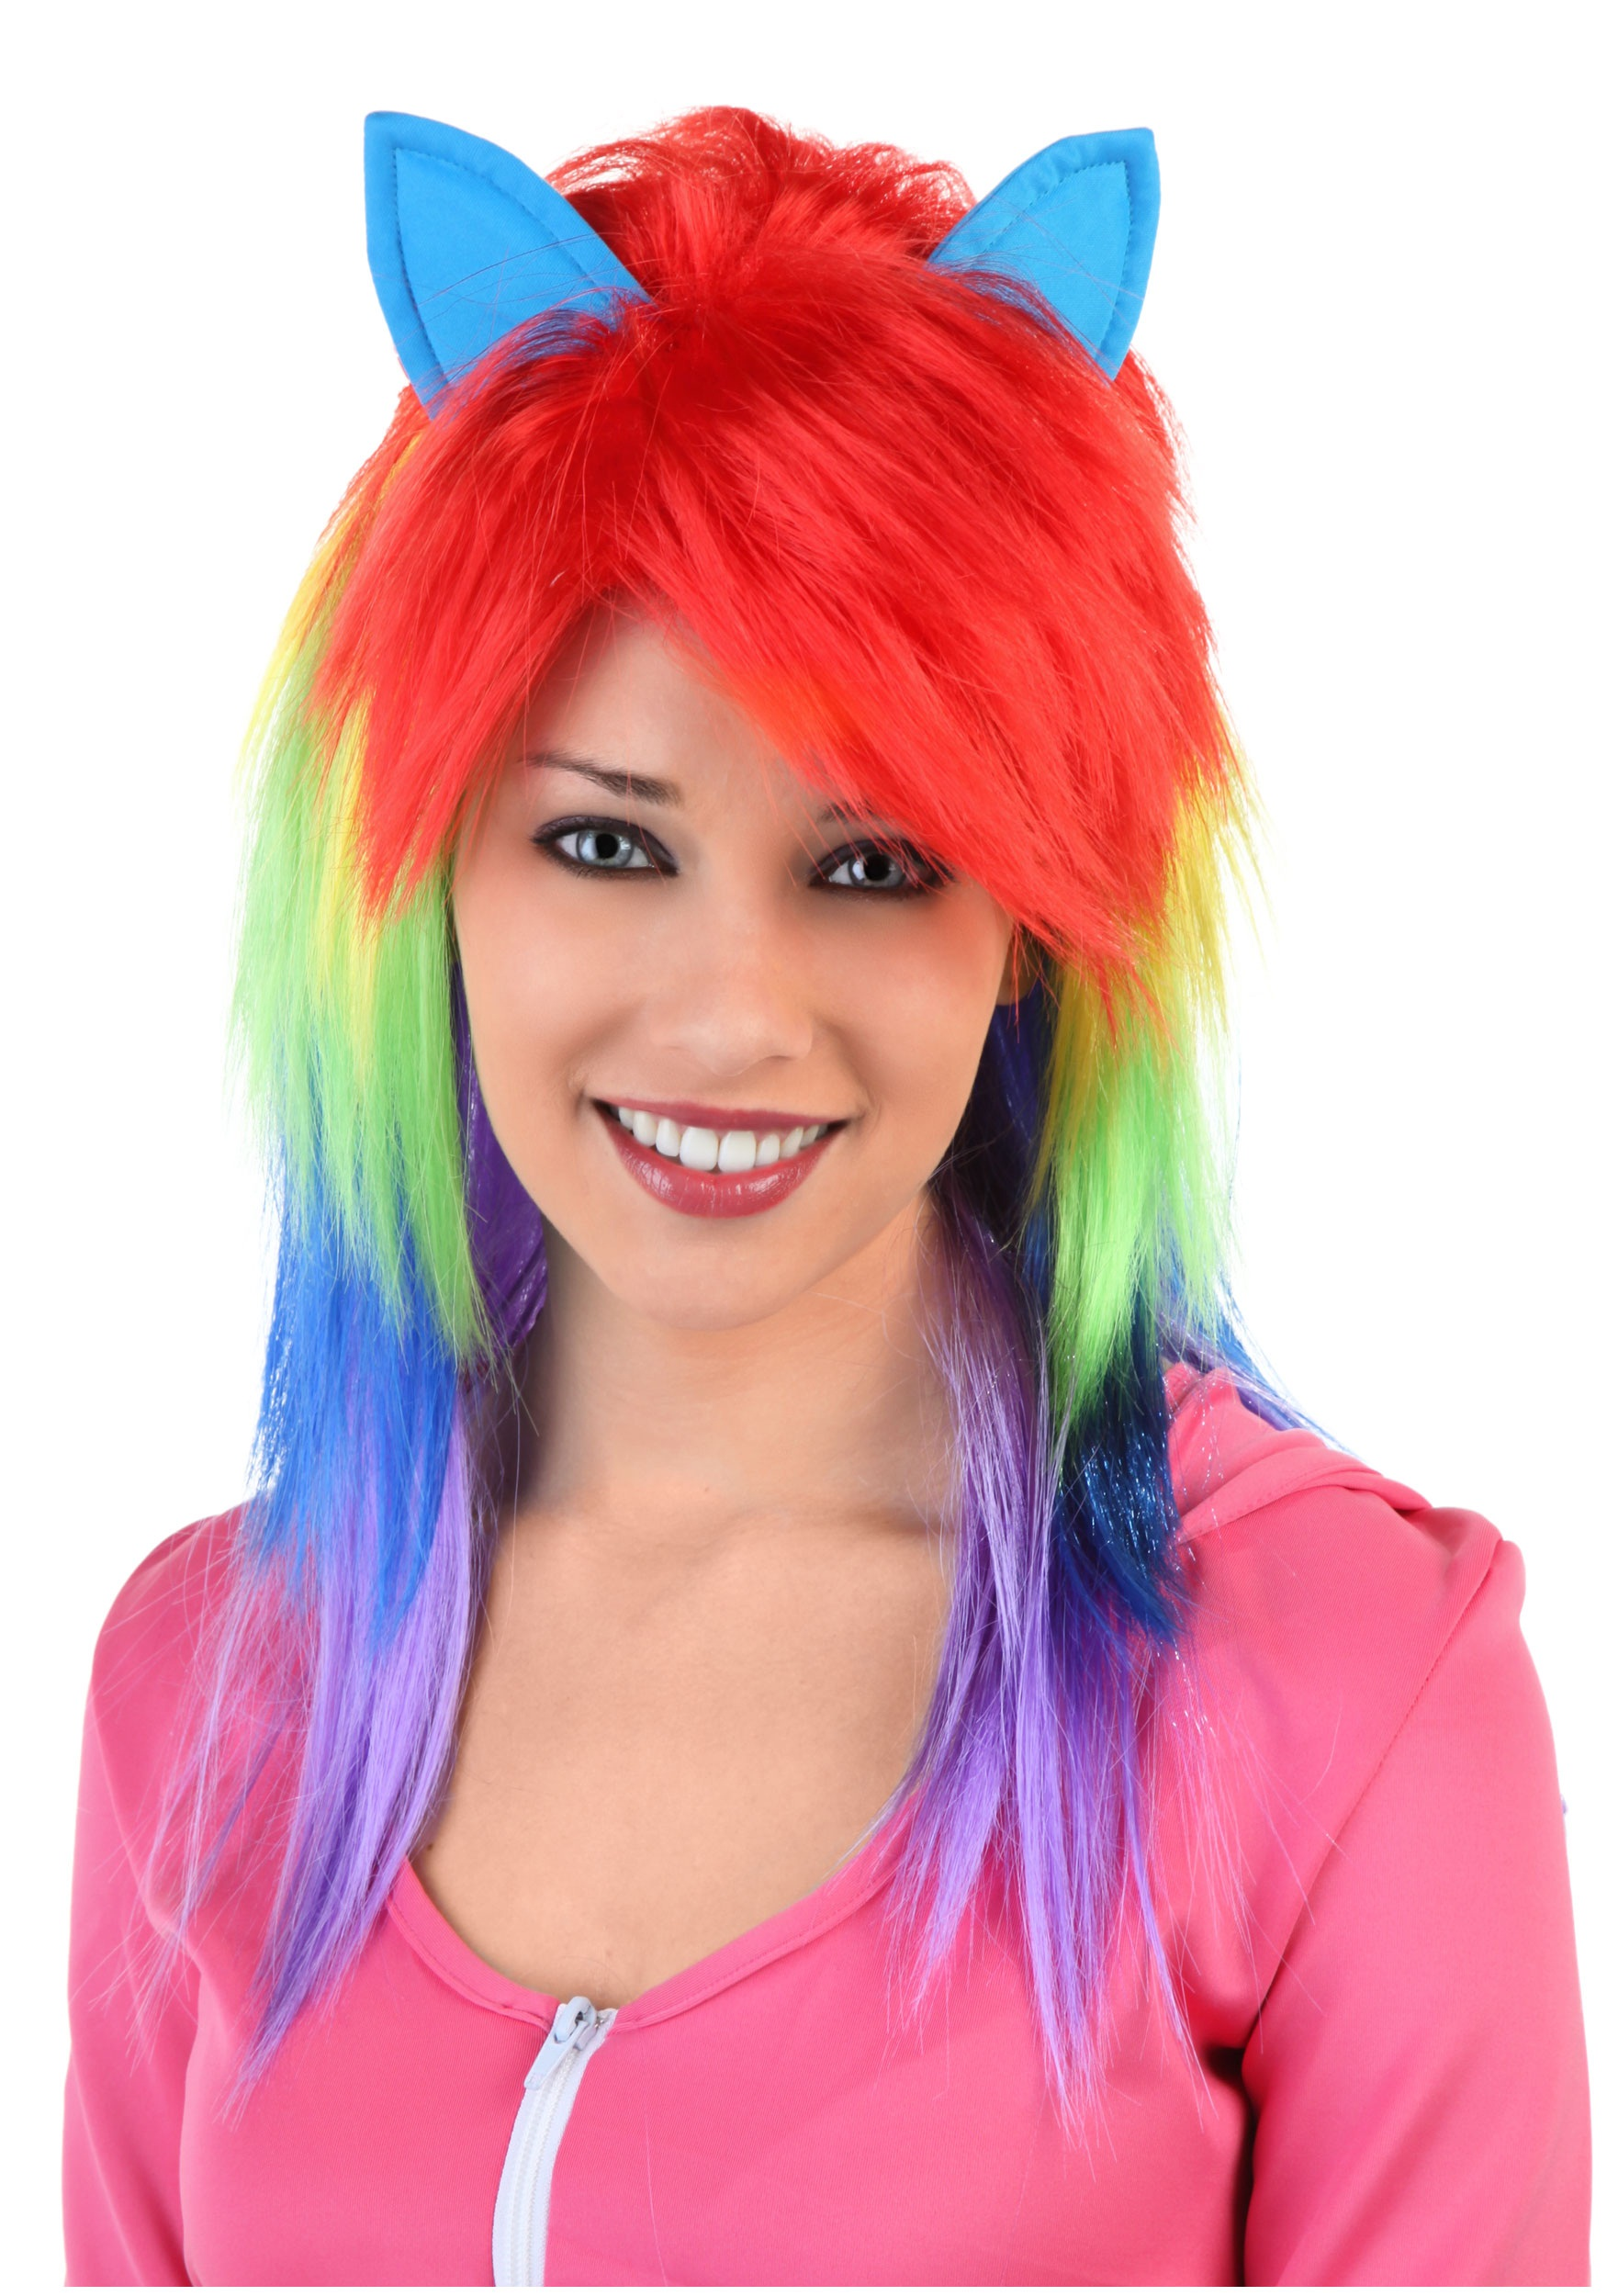 Cute teen with dyed hair